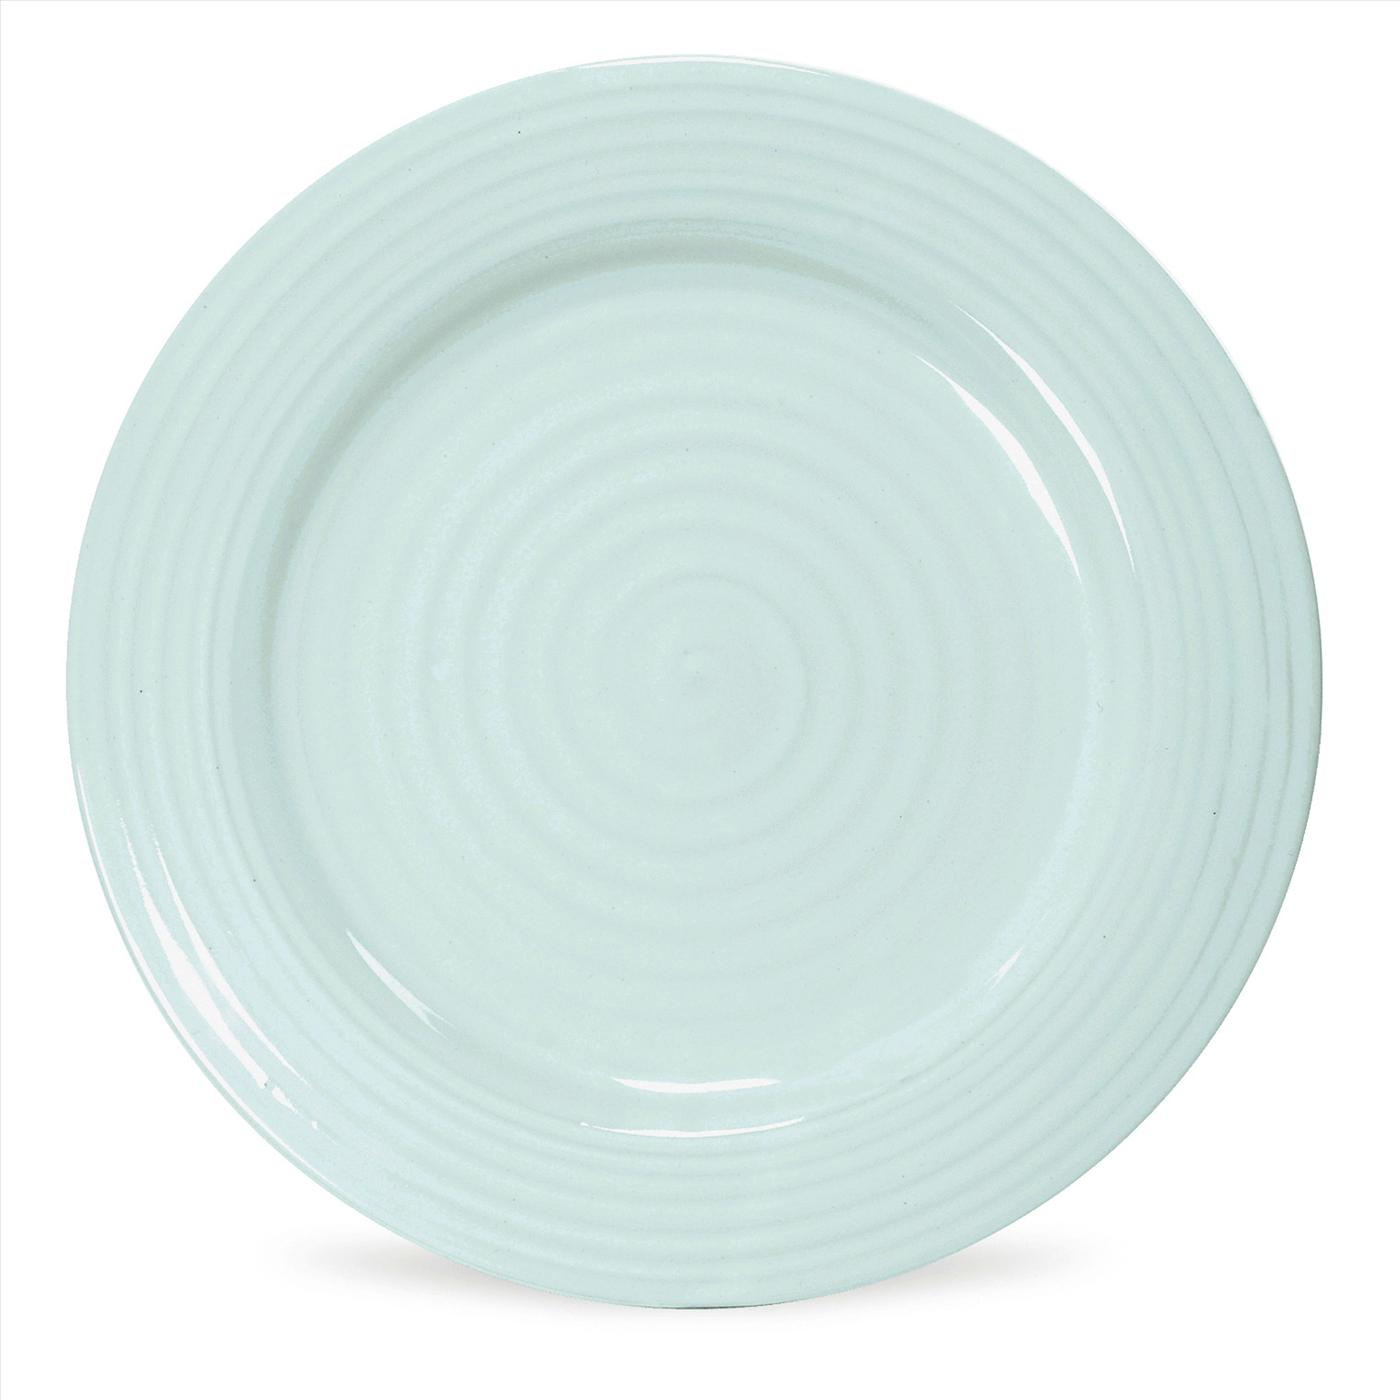 Portmeirion Sophie Conran Celadon Set of 4 Dinner Plates image number 0